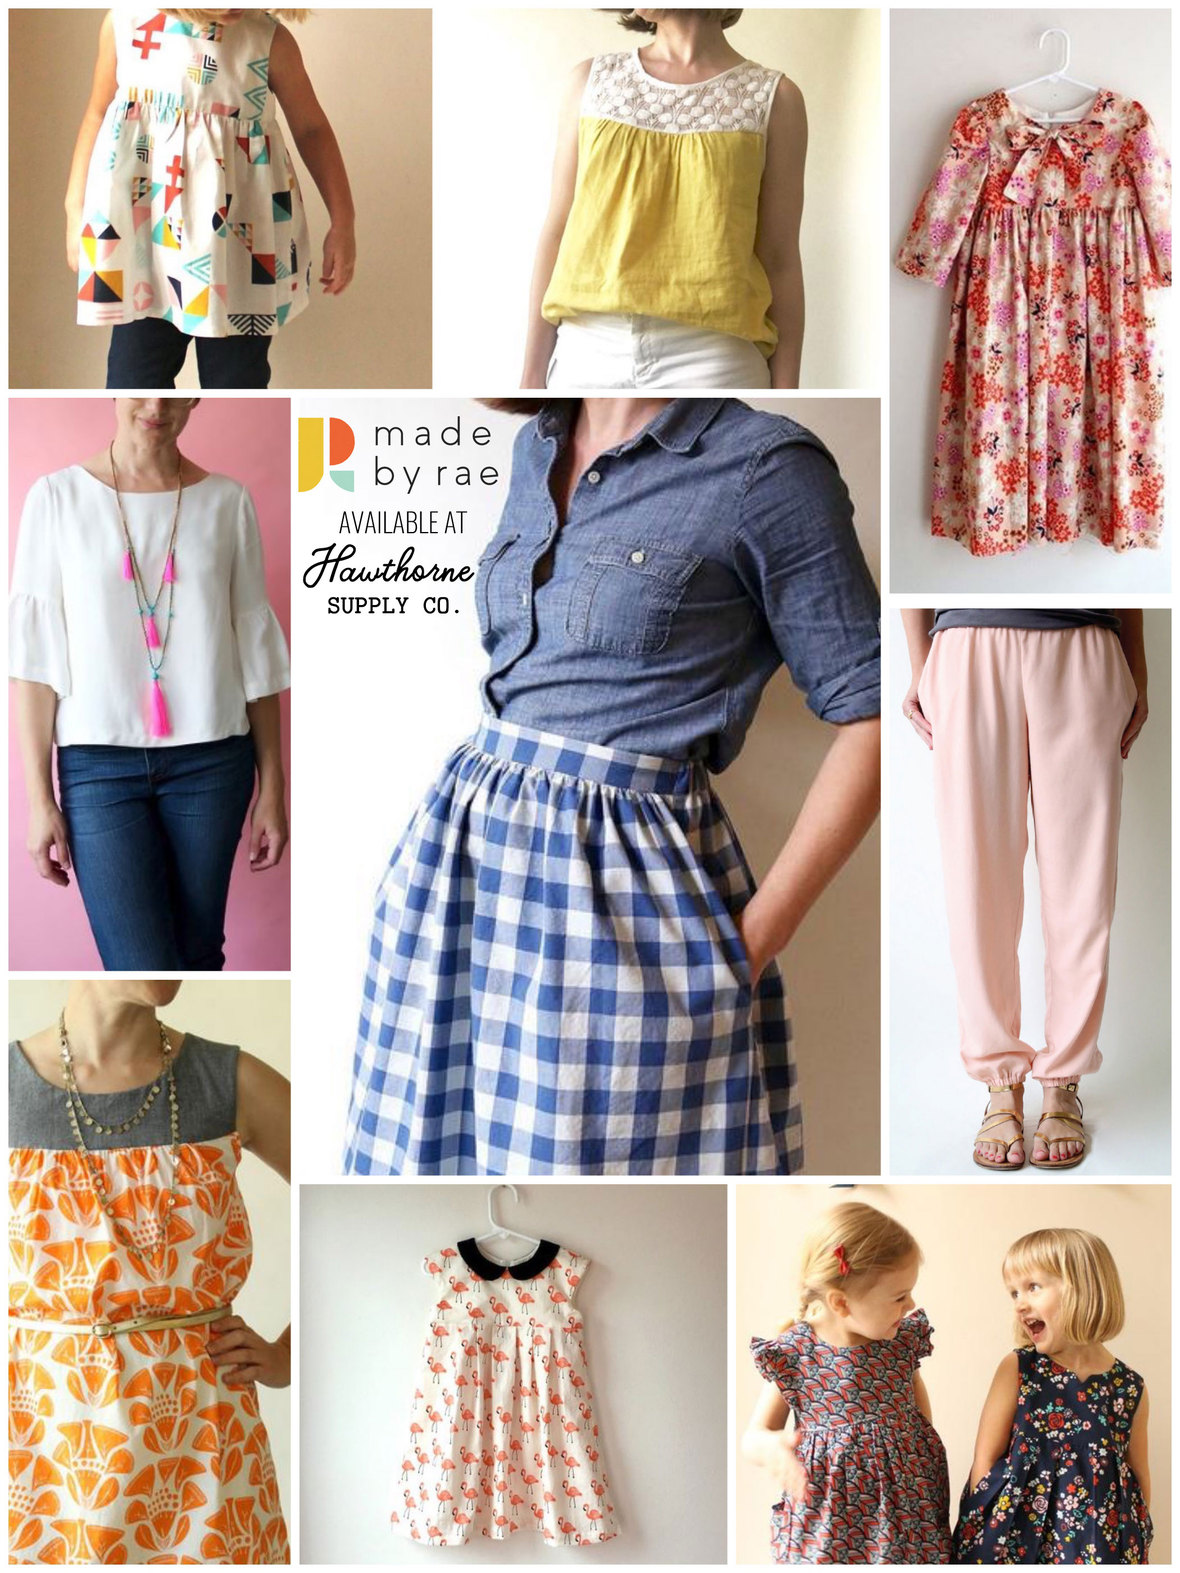 Made-by-Rae-Sewing-Patterns-available-at-Hawthorne-Supply-Co.